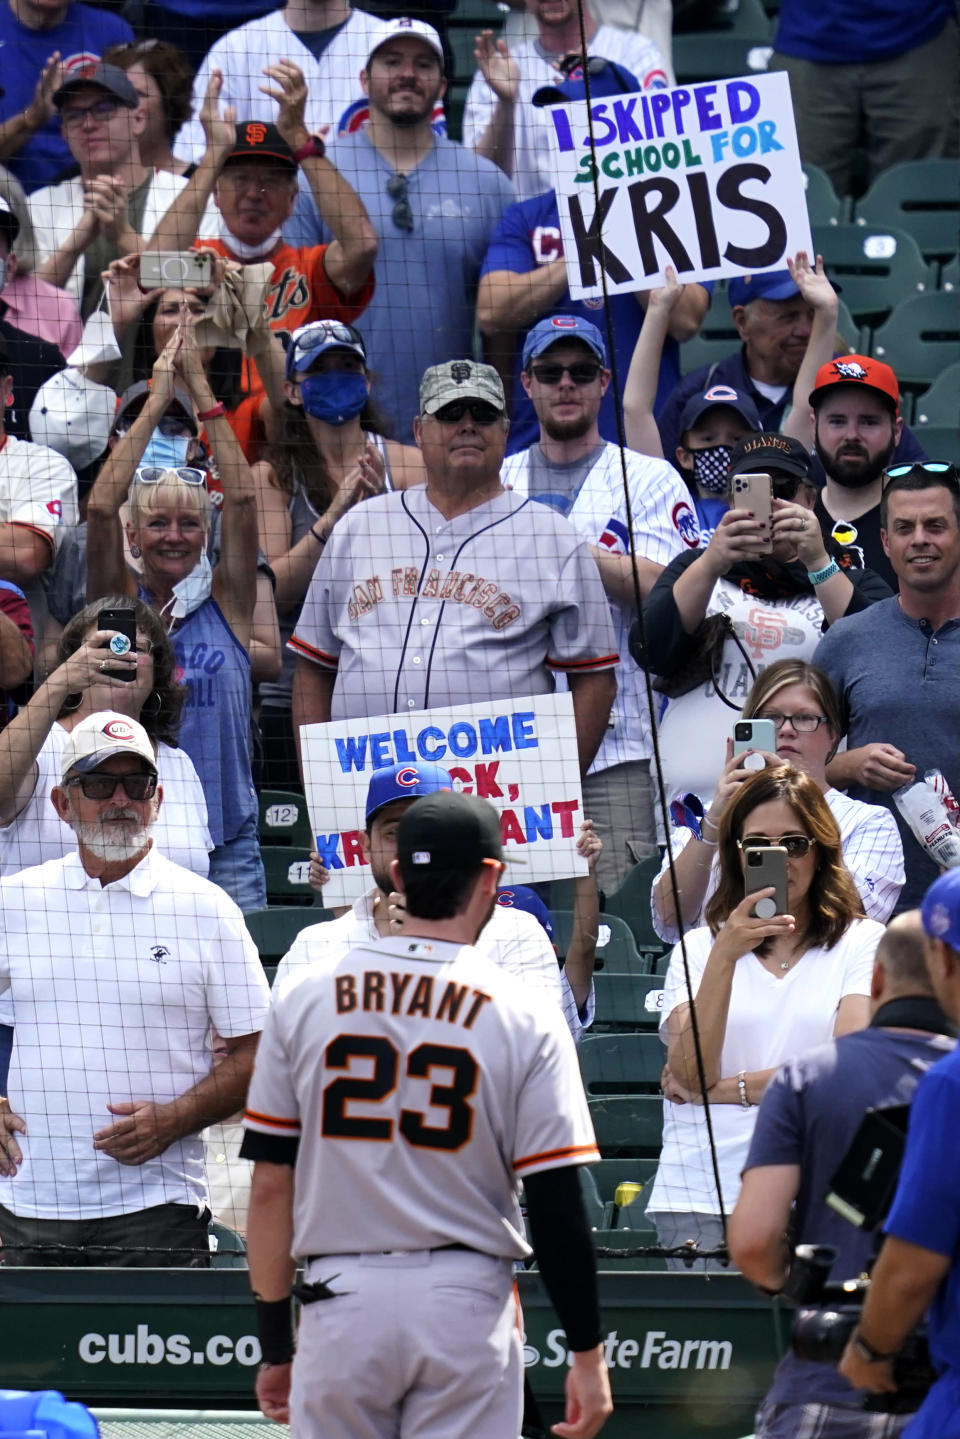 Chicago Cubs fans greet San Francisco Giants' Kris Bryant (23) before a baseball game in Chicago, Friday, Sept. 10, 2021. (AP Photo/Nam Y. Huh)